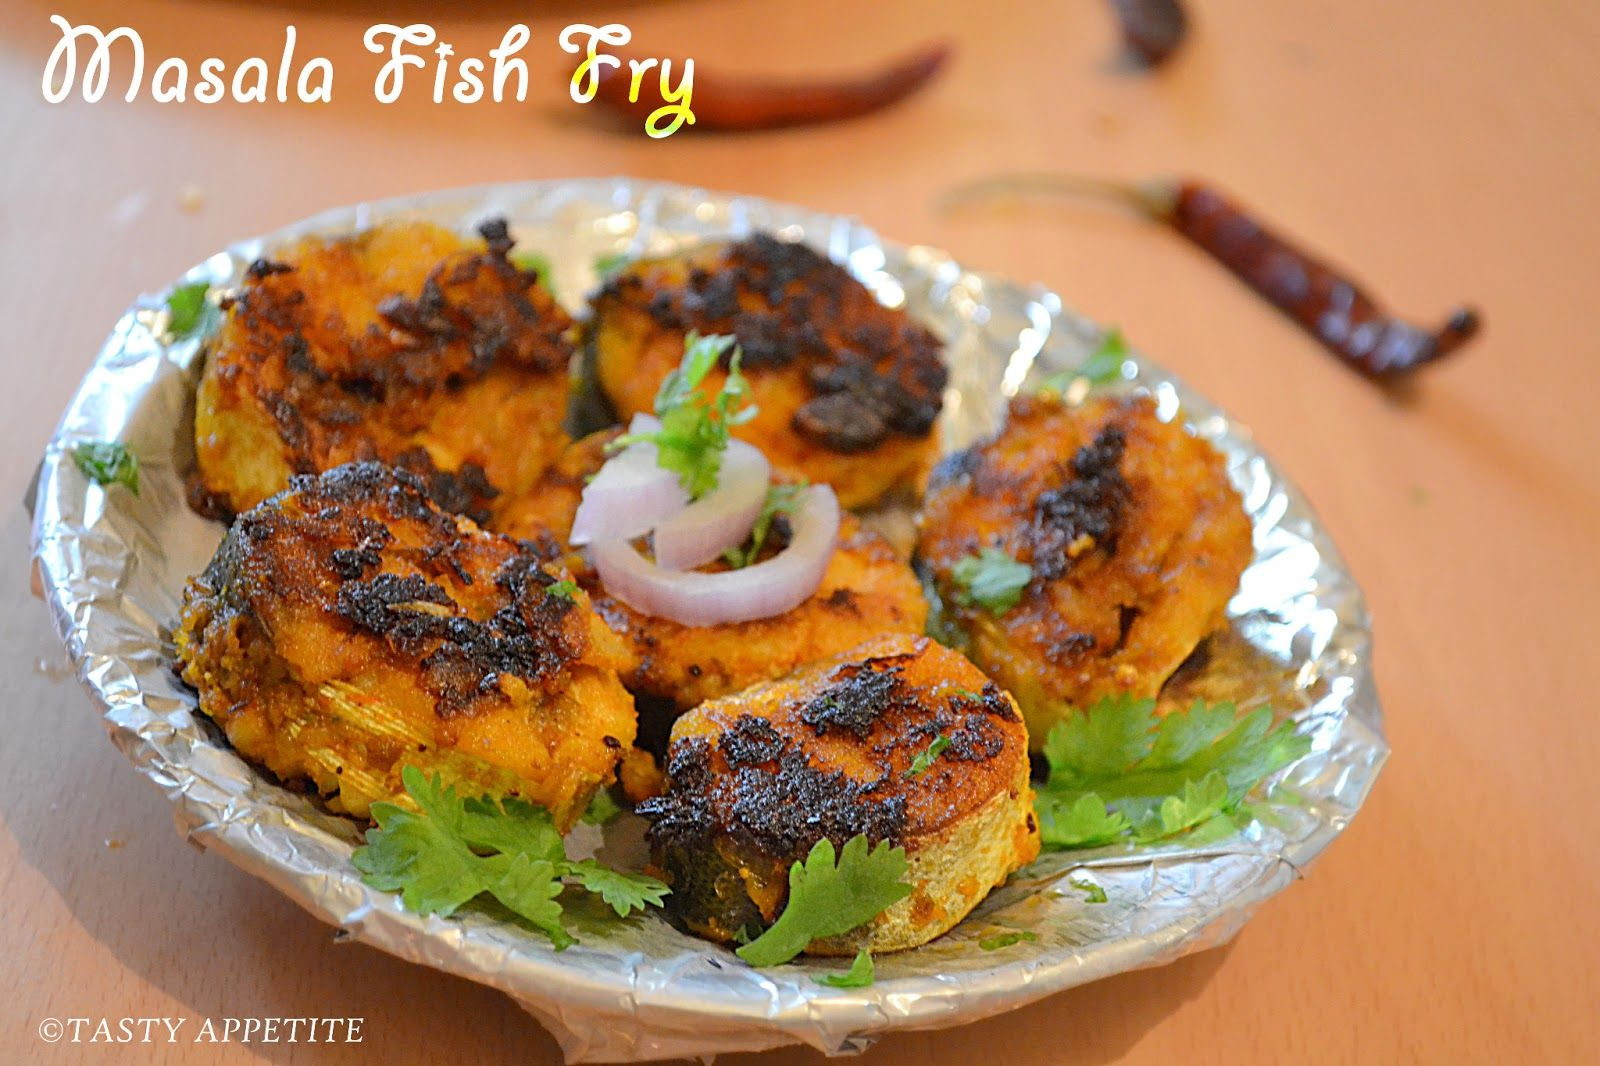 How to make masala fish fry south indian fish fry recipe easy how to make masala fish fry south indian fish fry recipe easy step by forumfinder Gallery